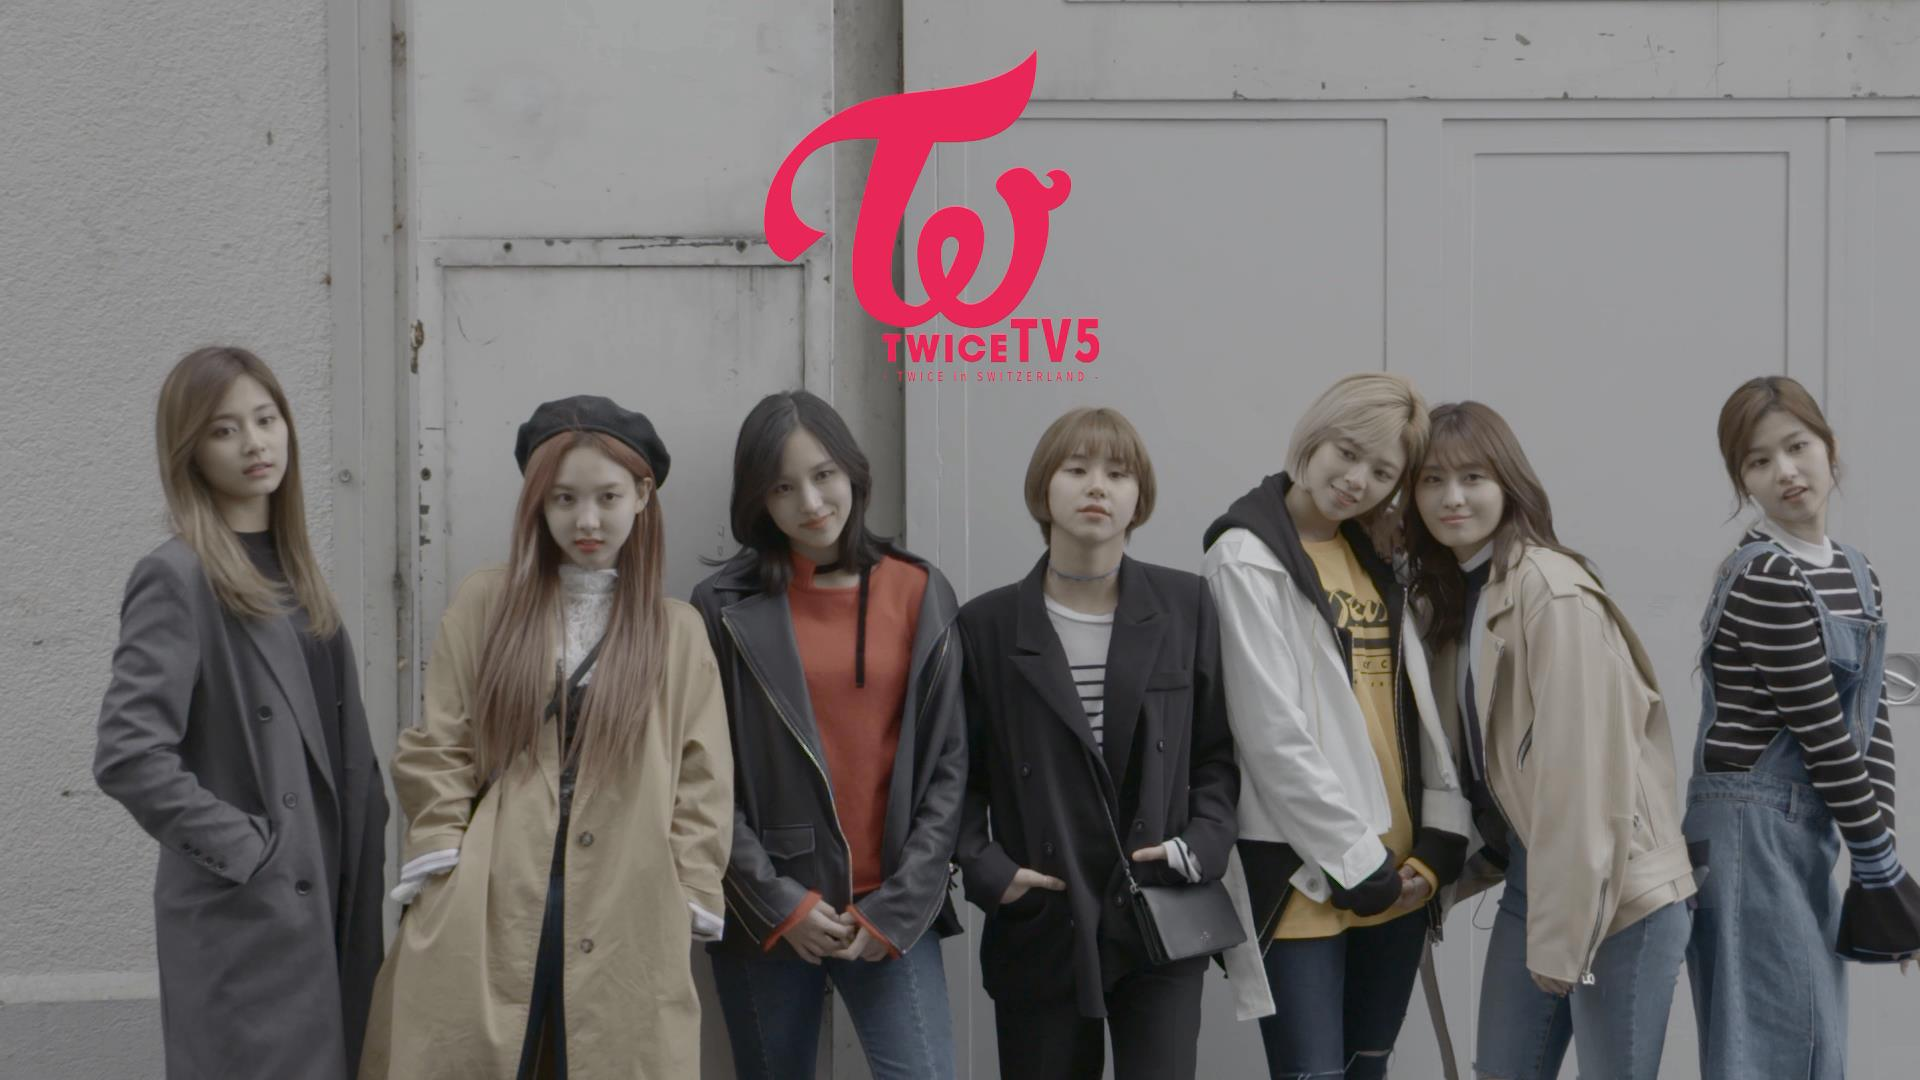 TWICE TV5 -TWICE in SWITZERLAND- EP.23